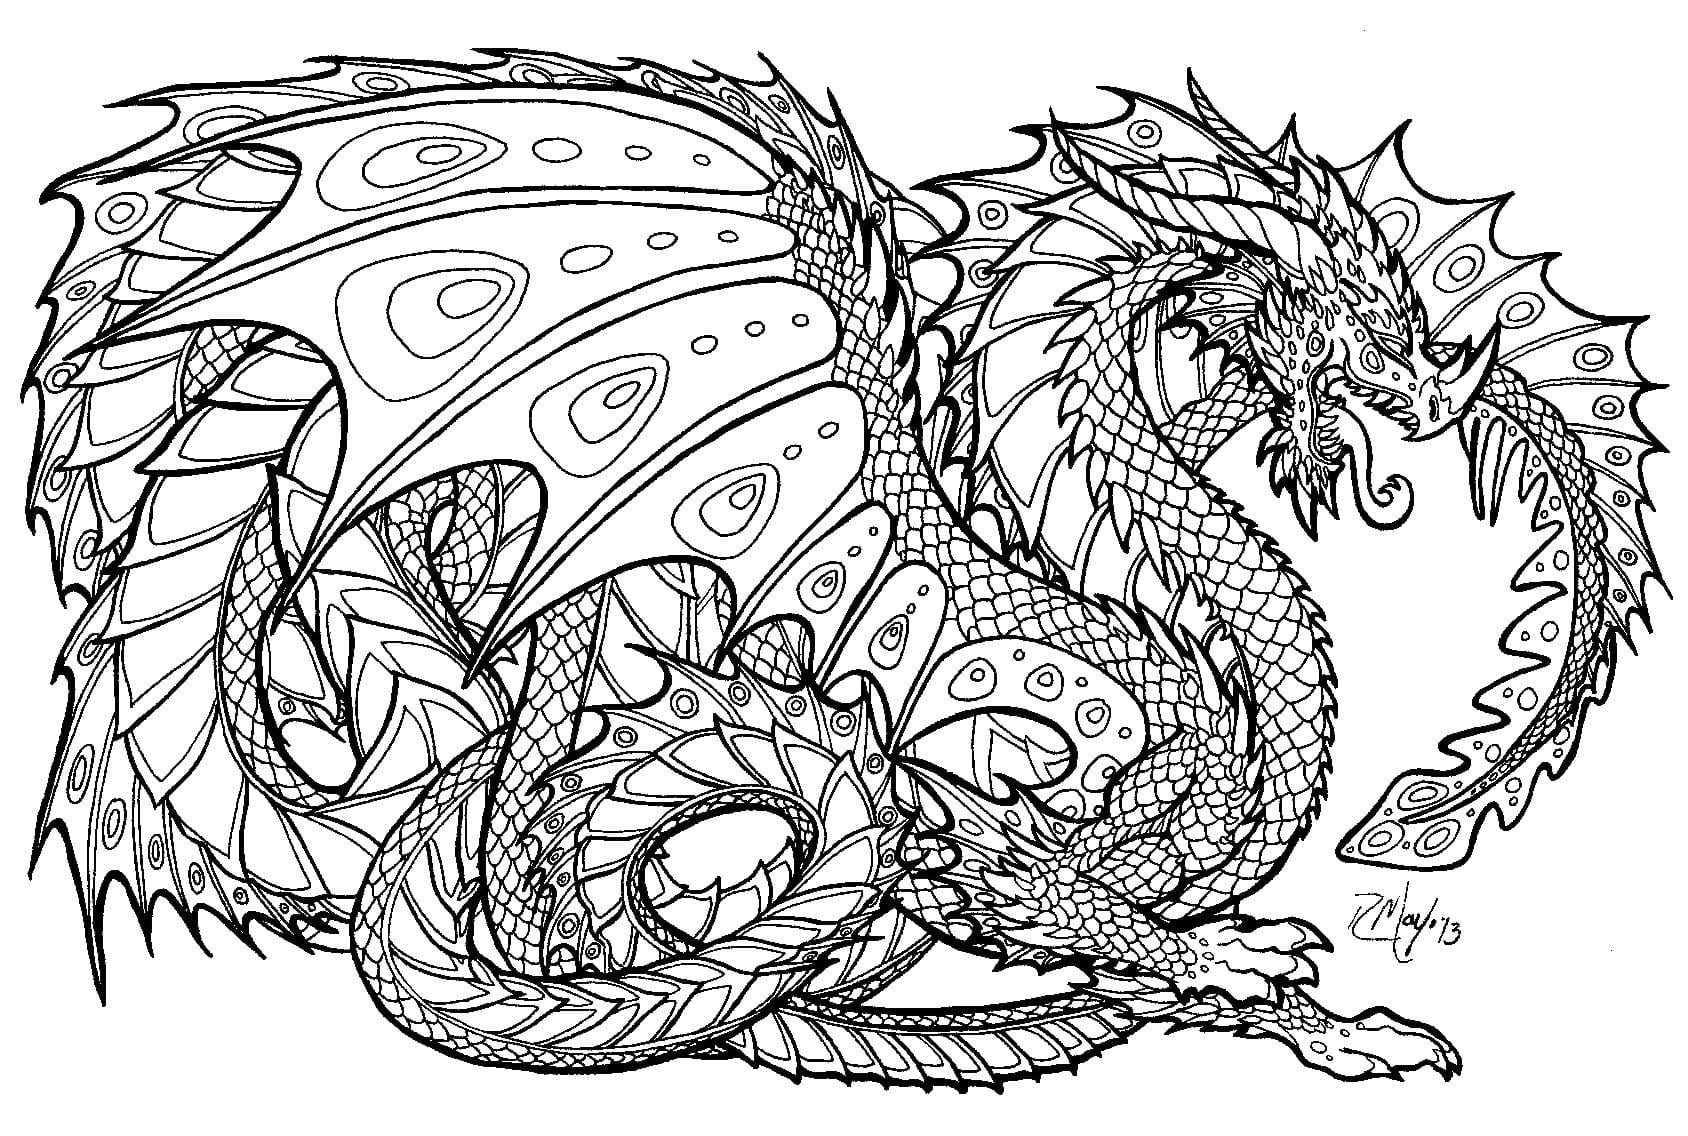 Wealth Dragon Colouring Sheets Free Printable Coloring Pages For